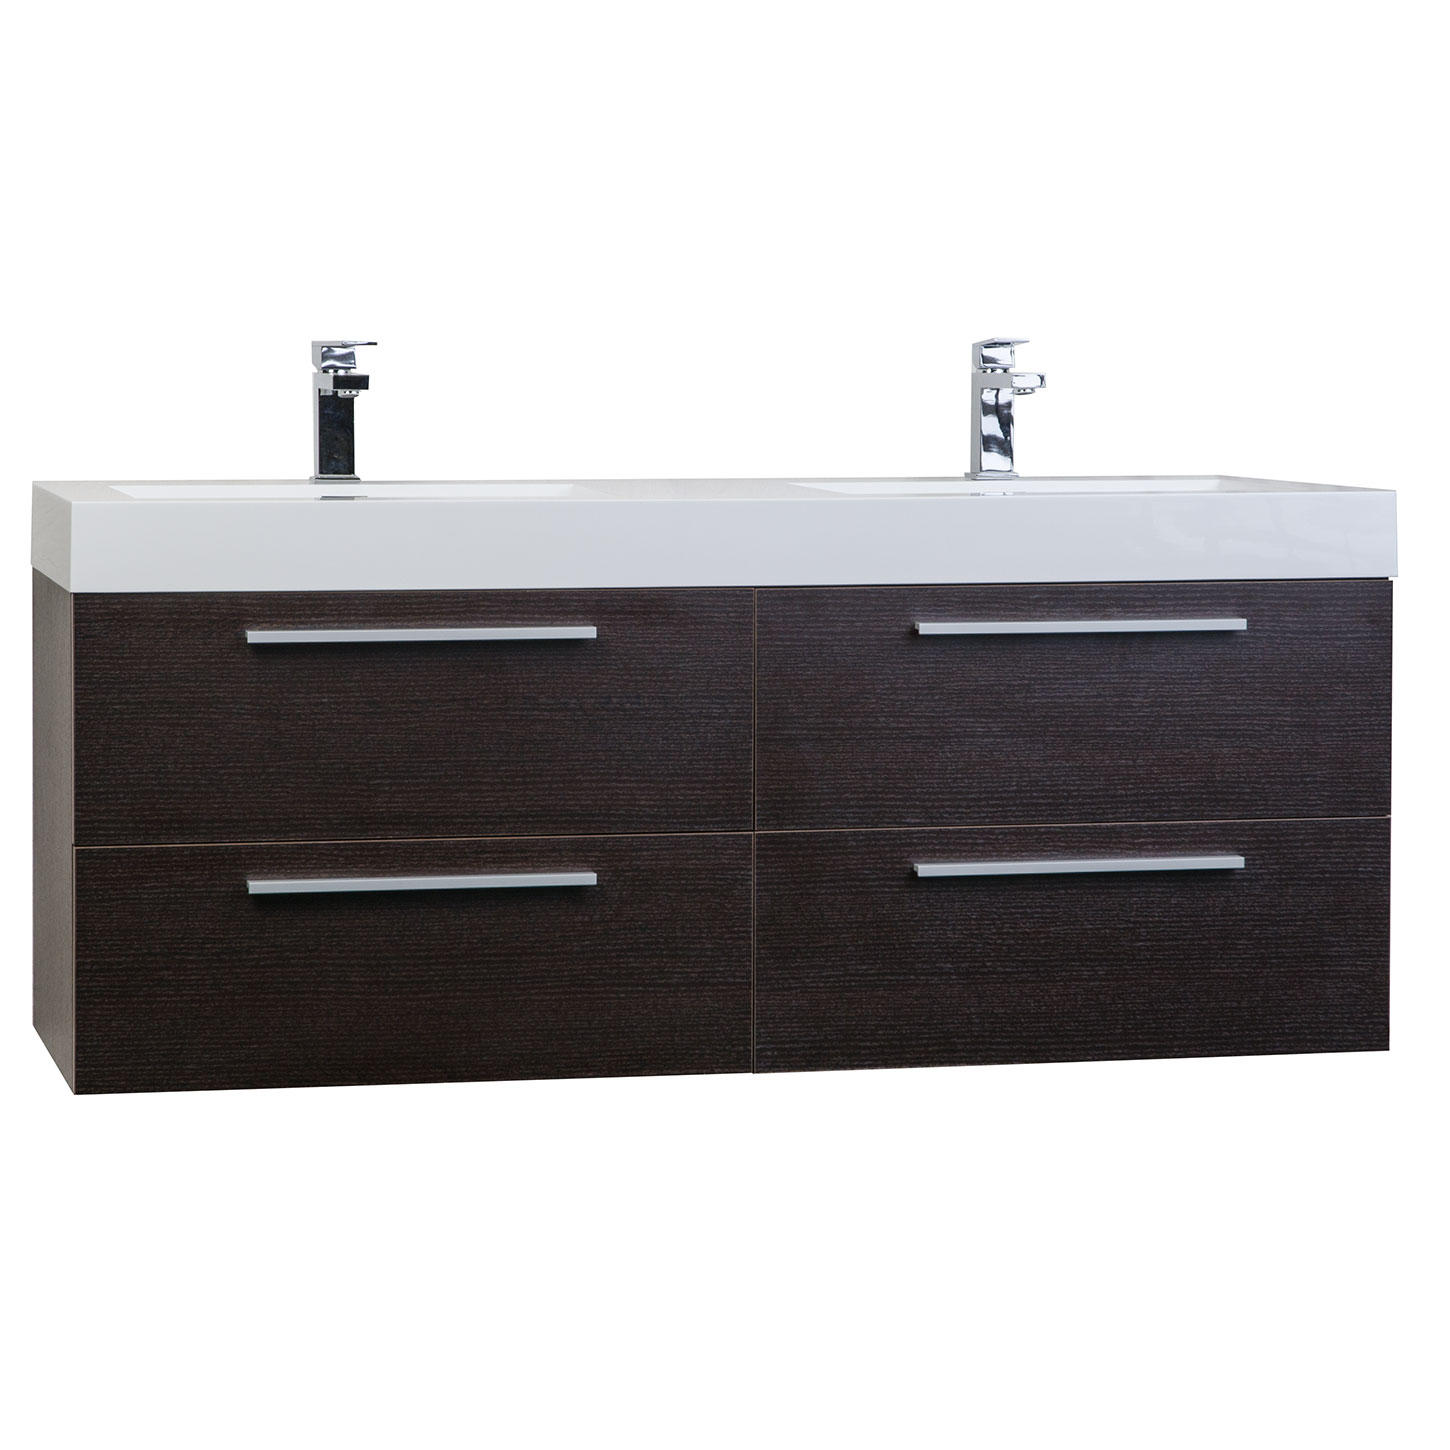 54 modern double sink vanity set in espresso tn b1380 wg - Contemporary double sink bathroom vanity ...